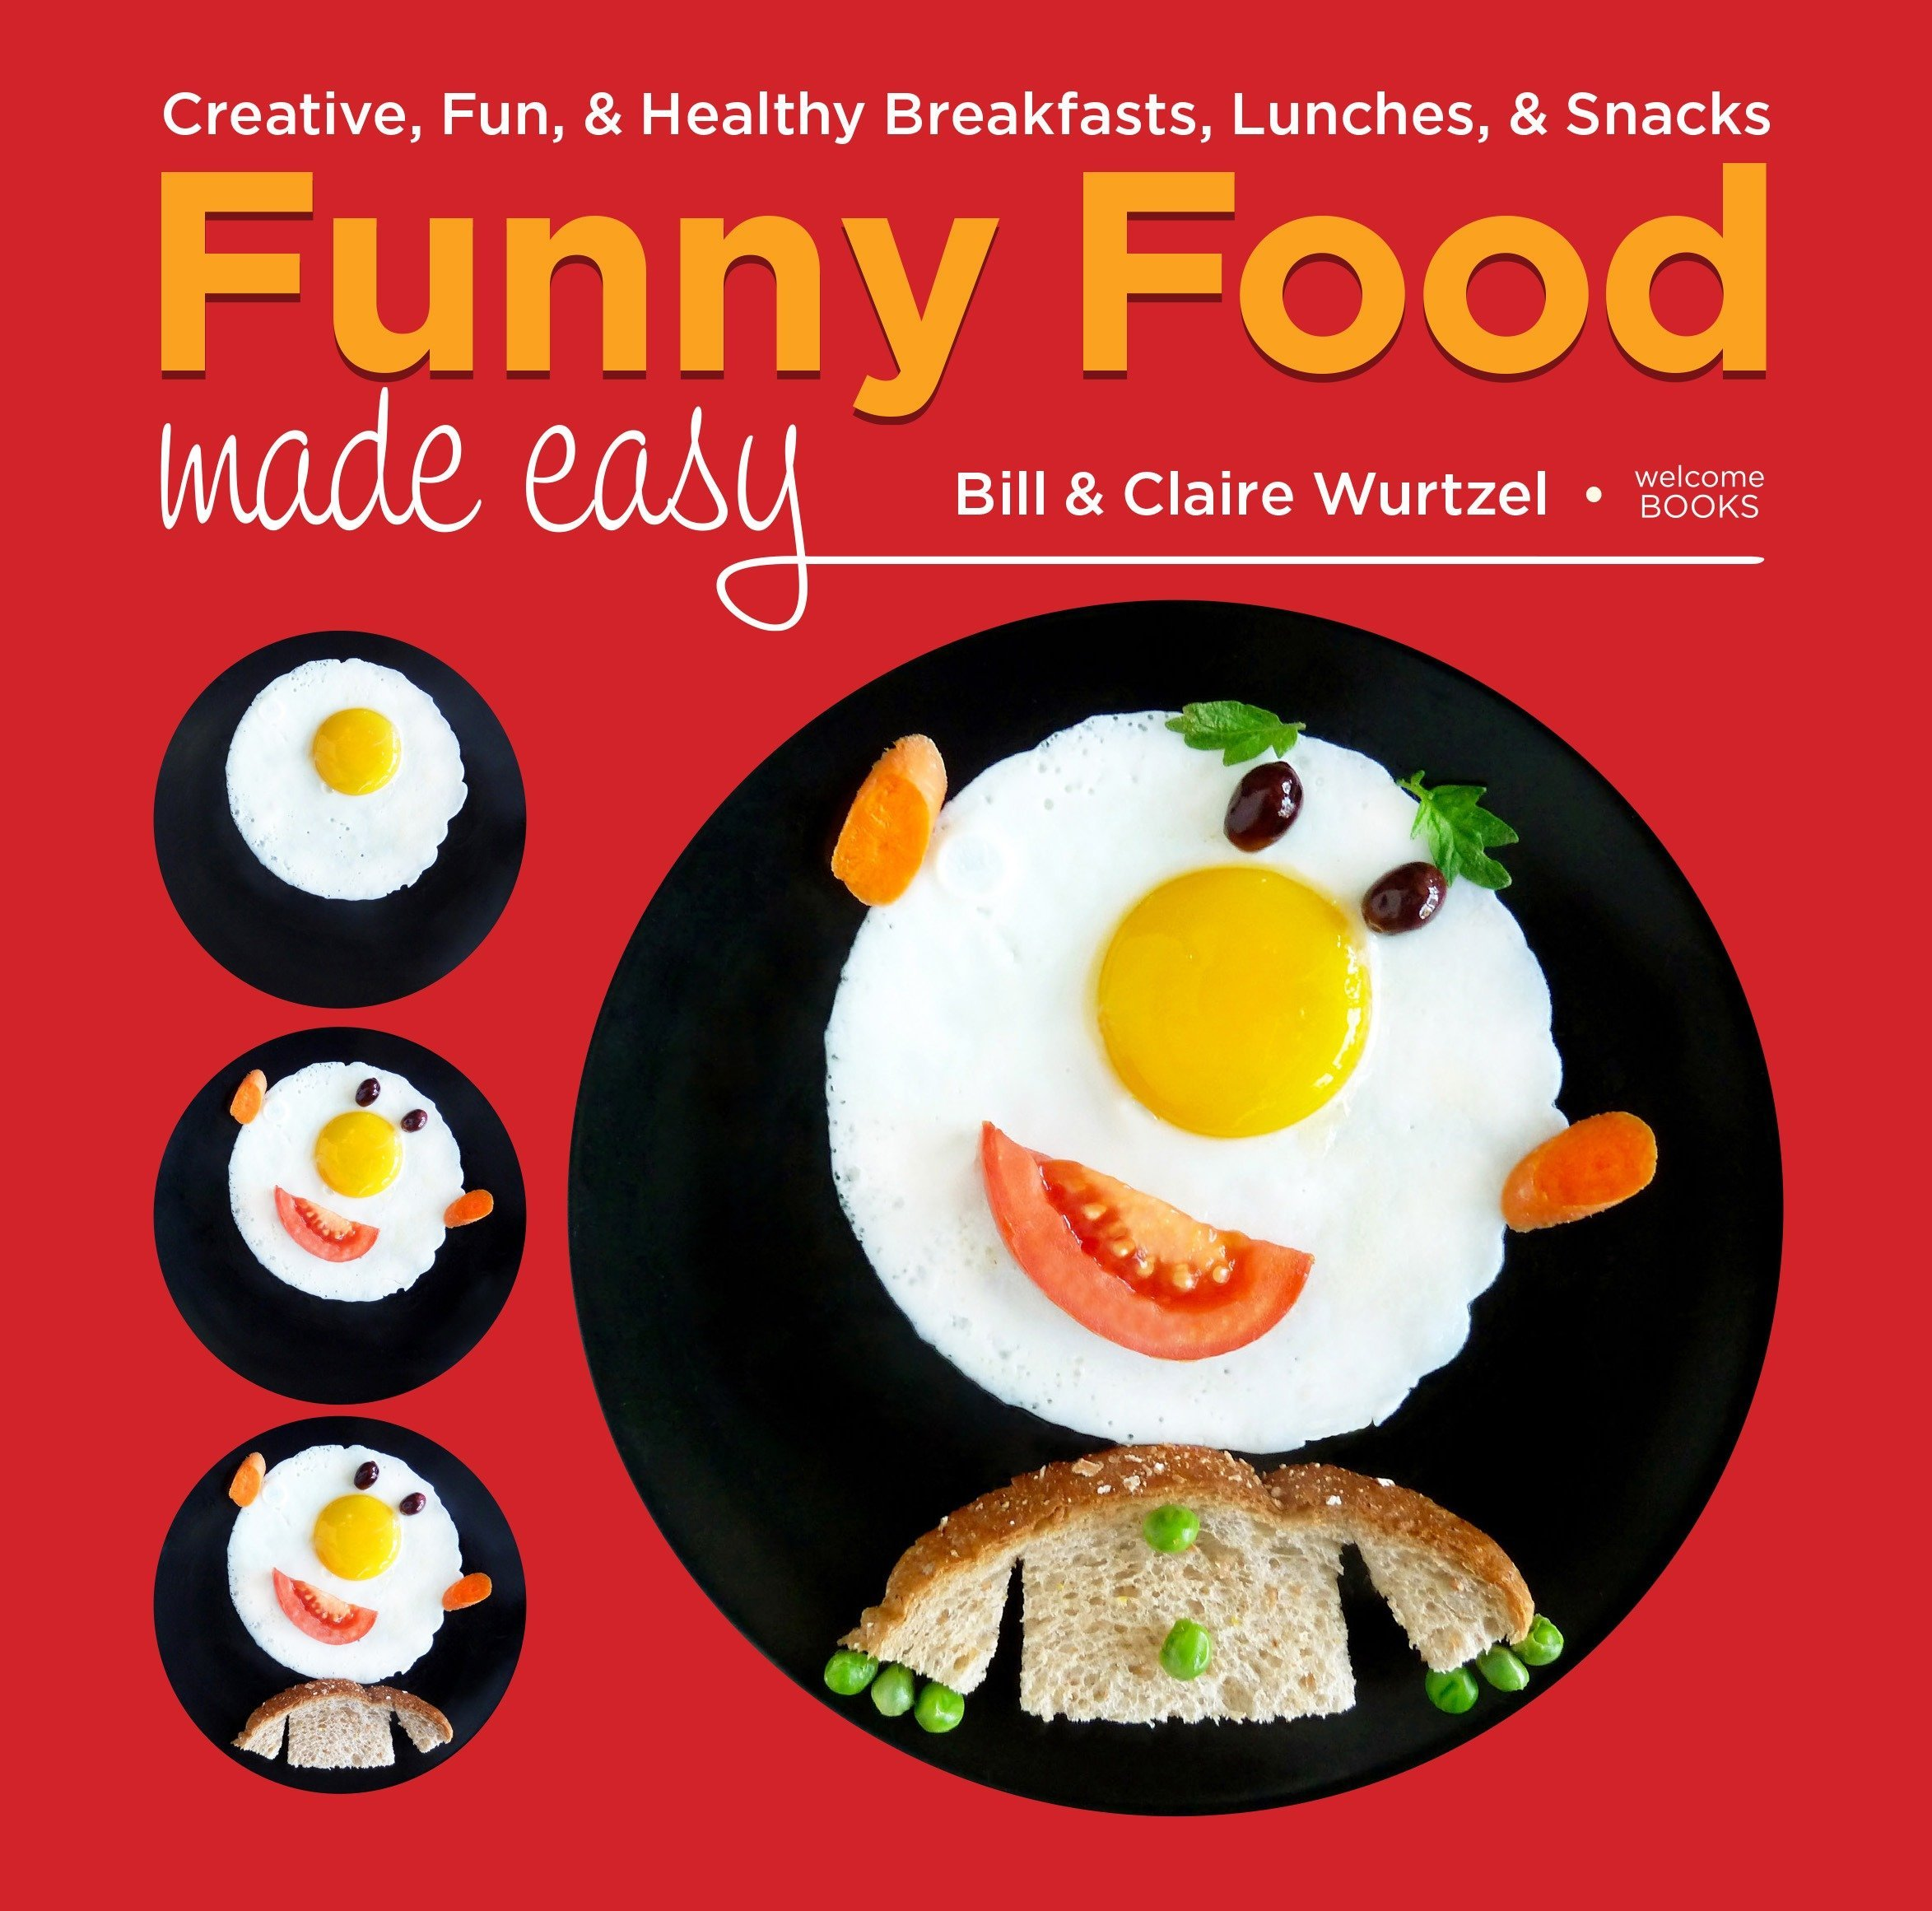 Read Online Funny Food Made Easy: Creative, Fun, & Healthy Breakfasts, Lunches, & Snacks pdf